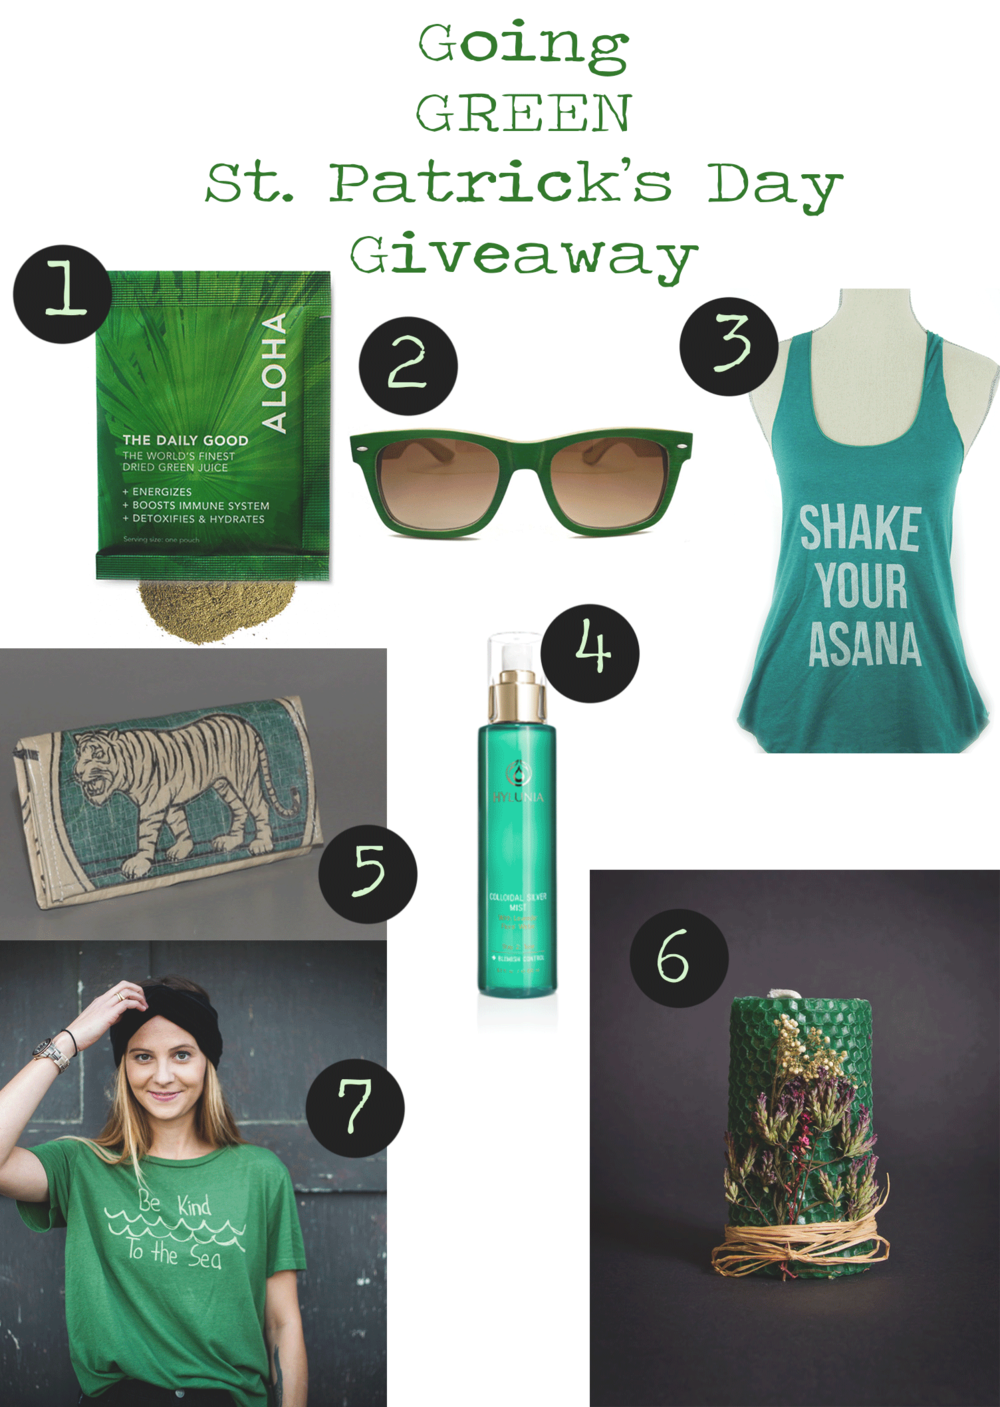 St Patrick's Day giveaway!